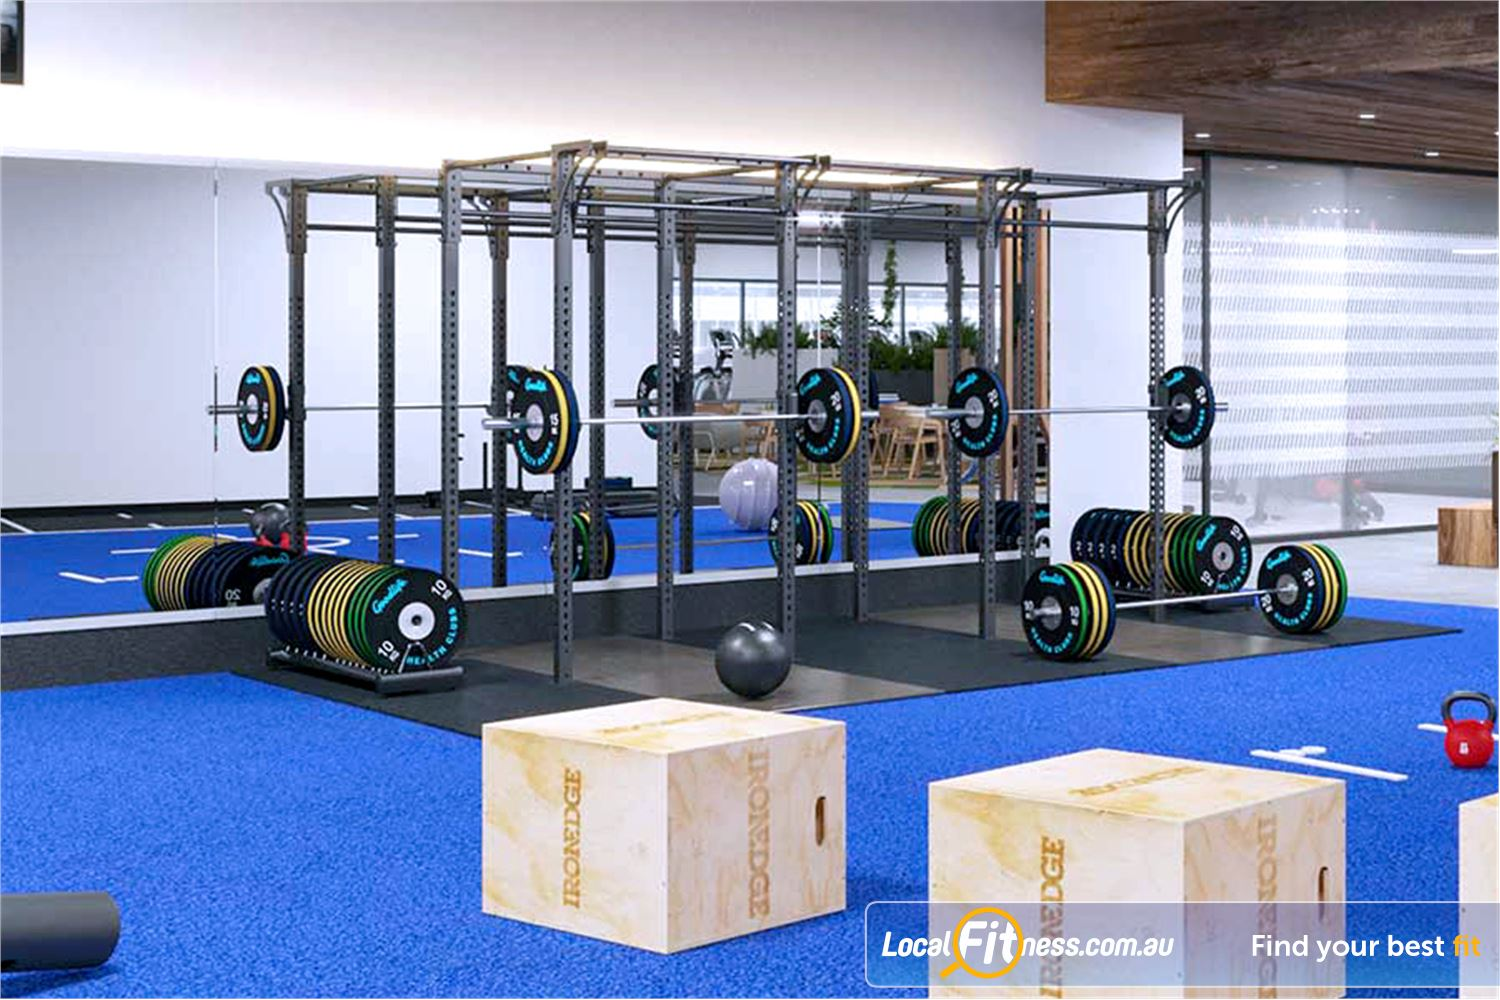 Goodlife Health Clubs Near Seaford Heights Noarlunga personal trainers can get you into plyometric training.